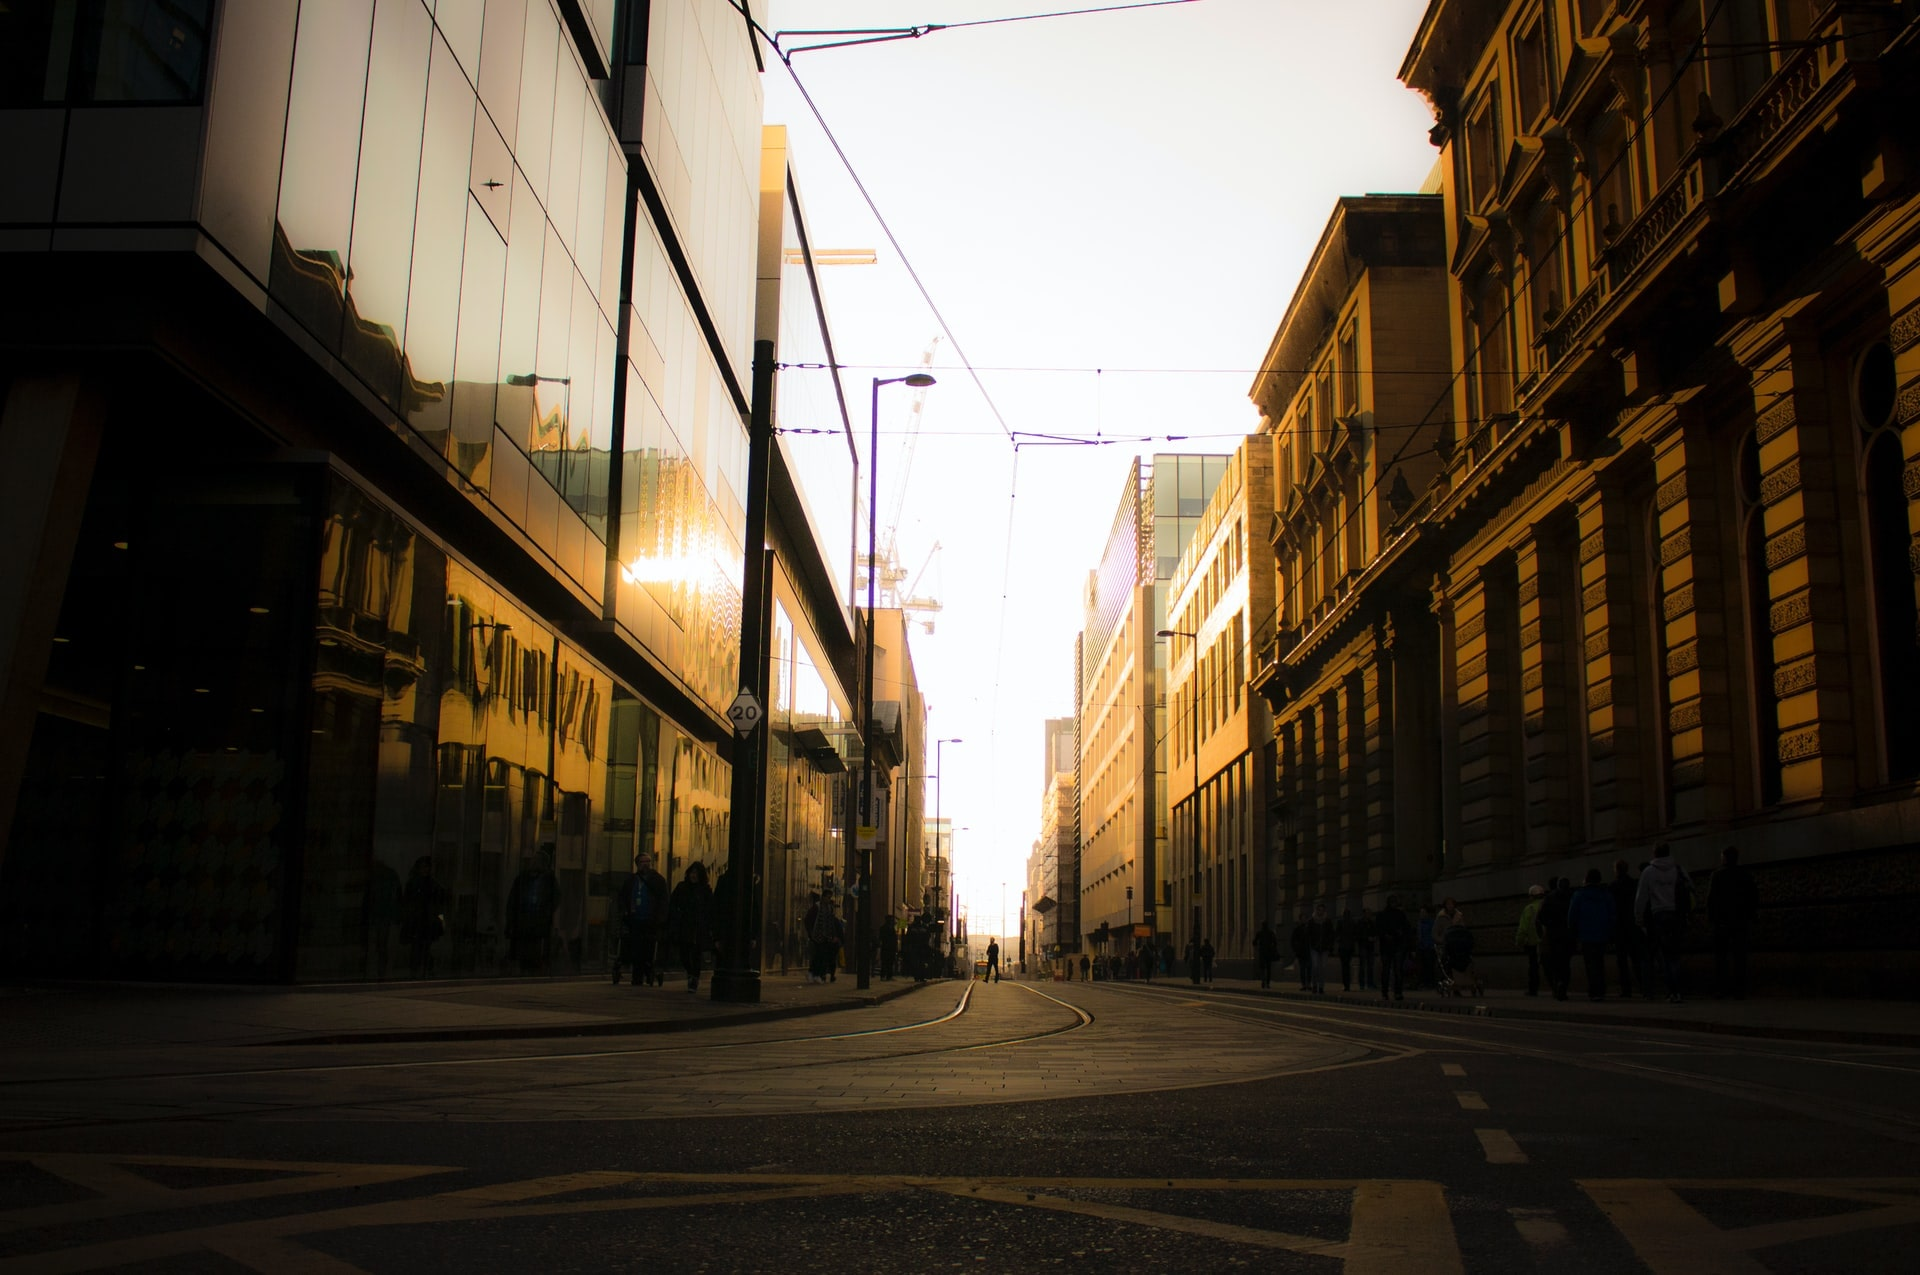 golden-light-shining-through-city-street-on-tramlines-at-sunset-in-manchester